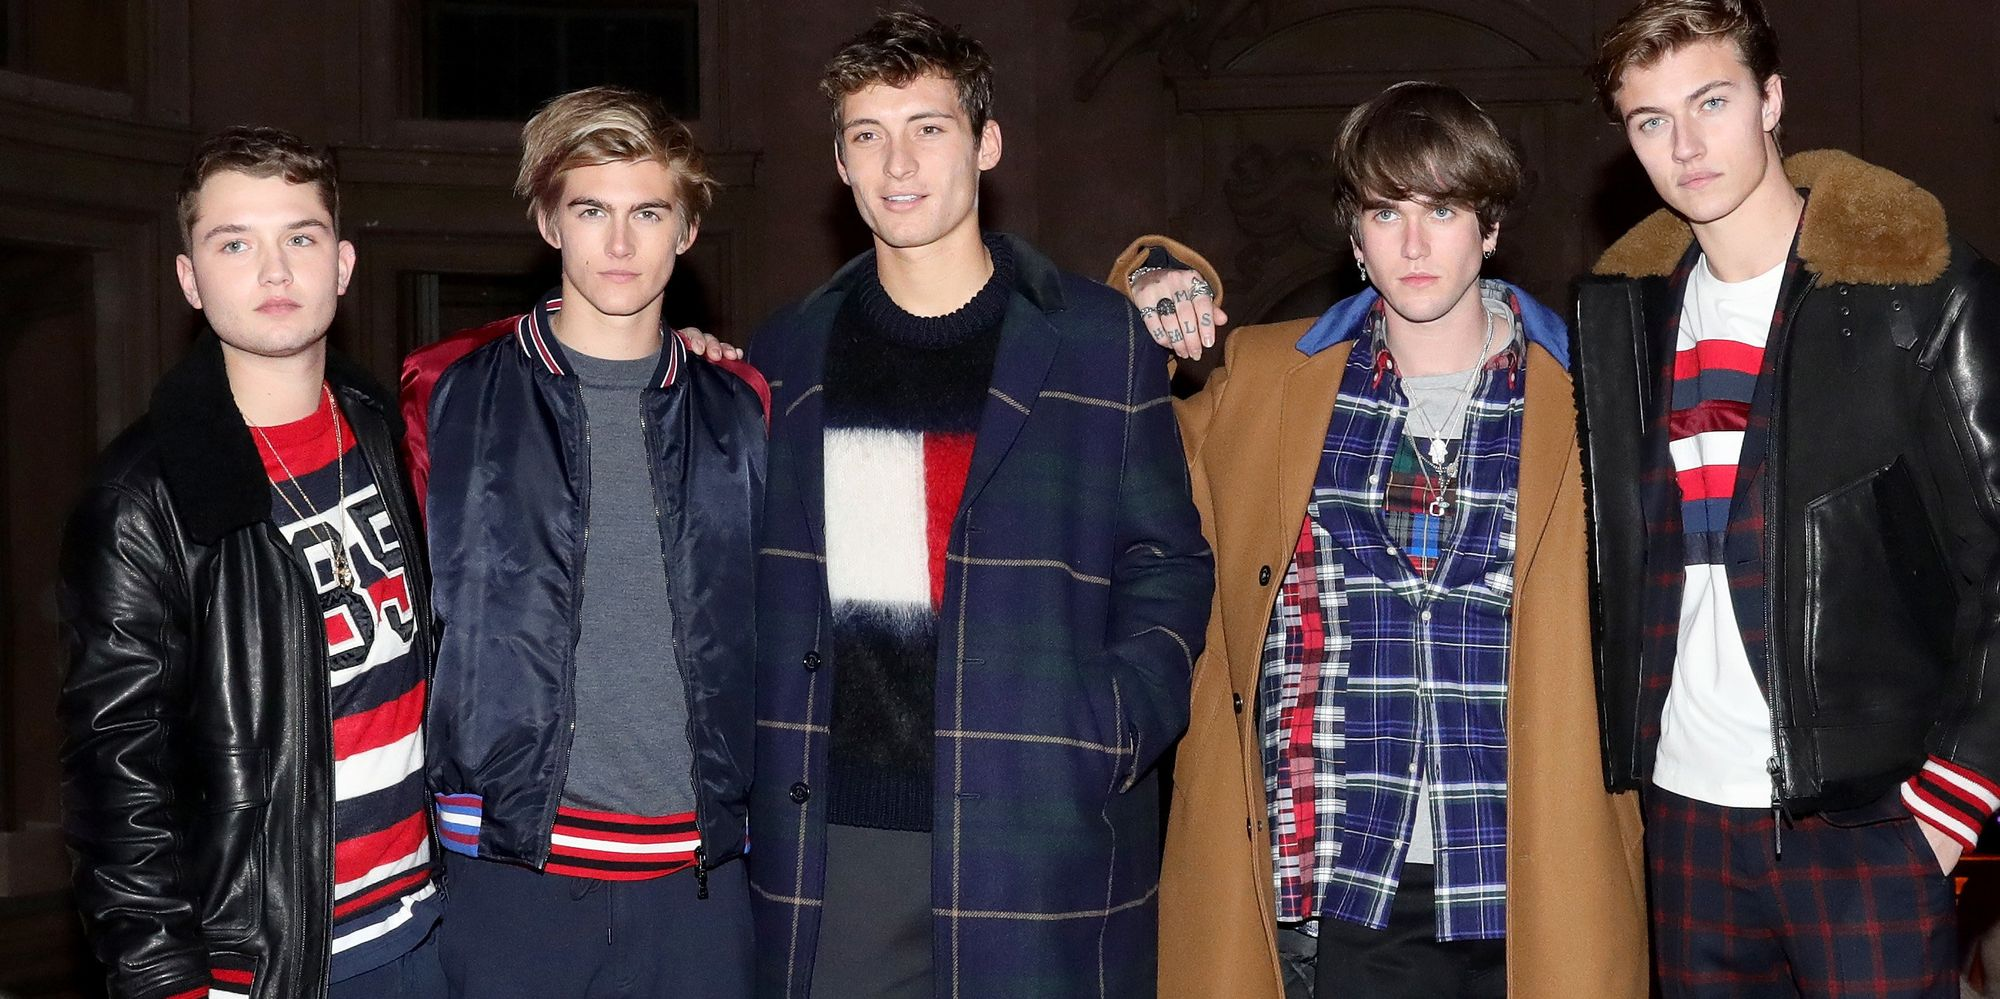 Jude Law, Cindy Crawford And Daniel Day-Lewis' Sons Model For Tommy Hilfiger At Florence Presentation